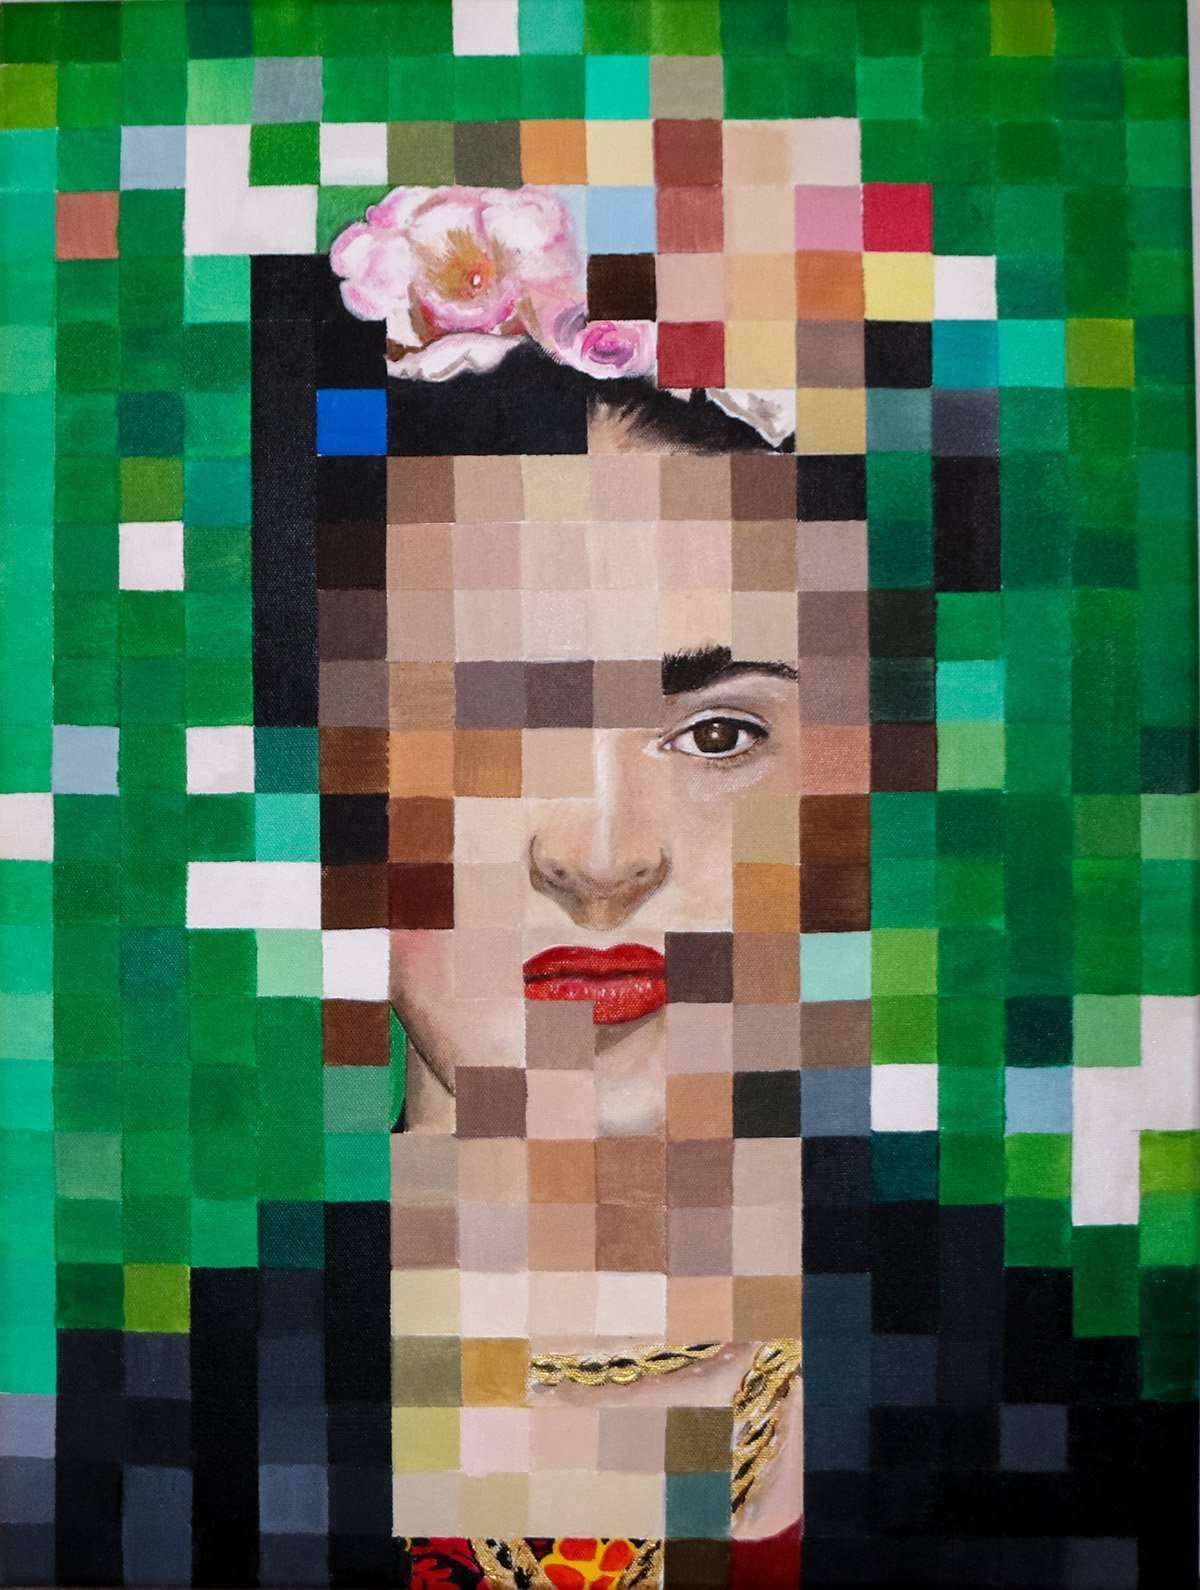 8-bit Frida, The World of Frida at IMAS